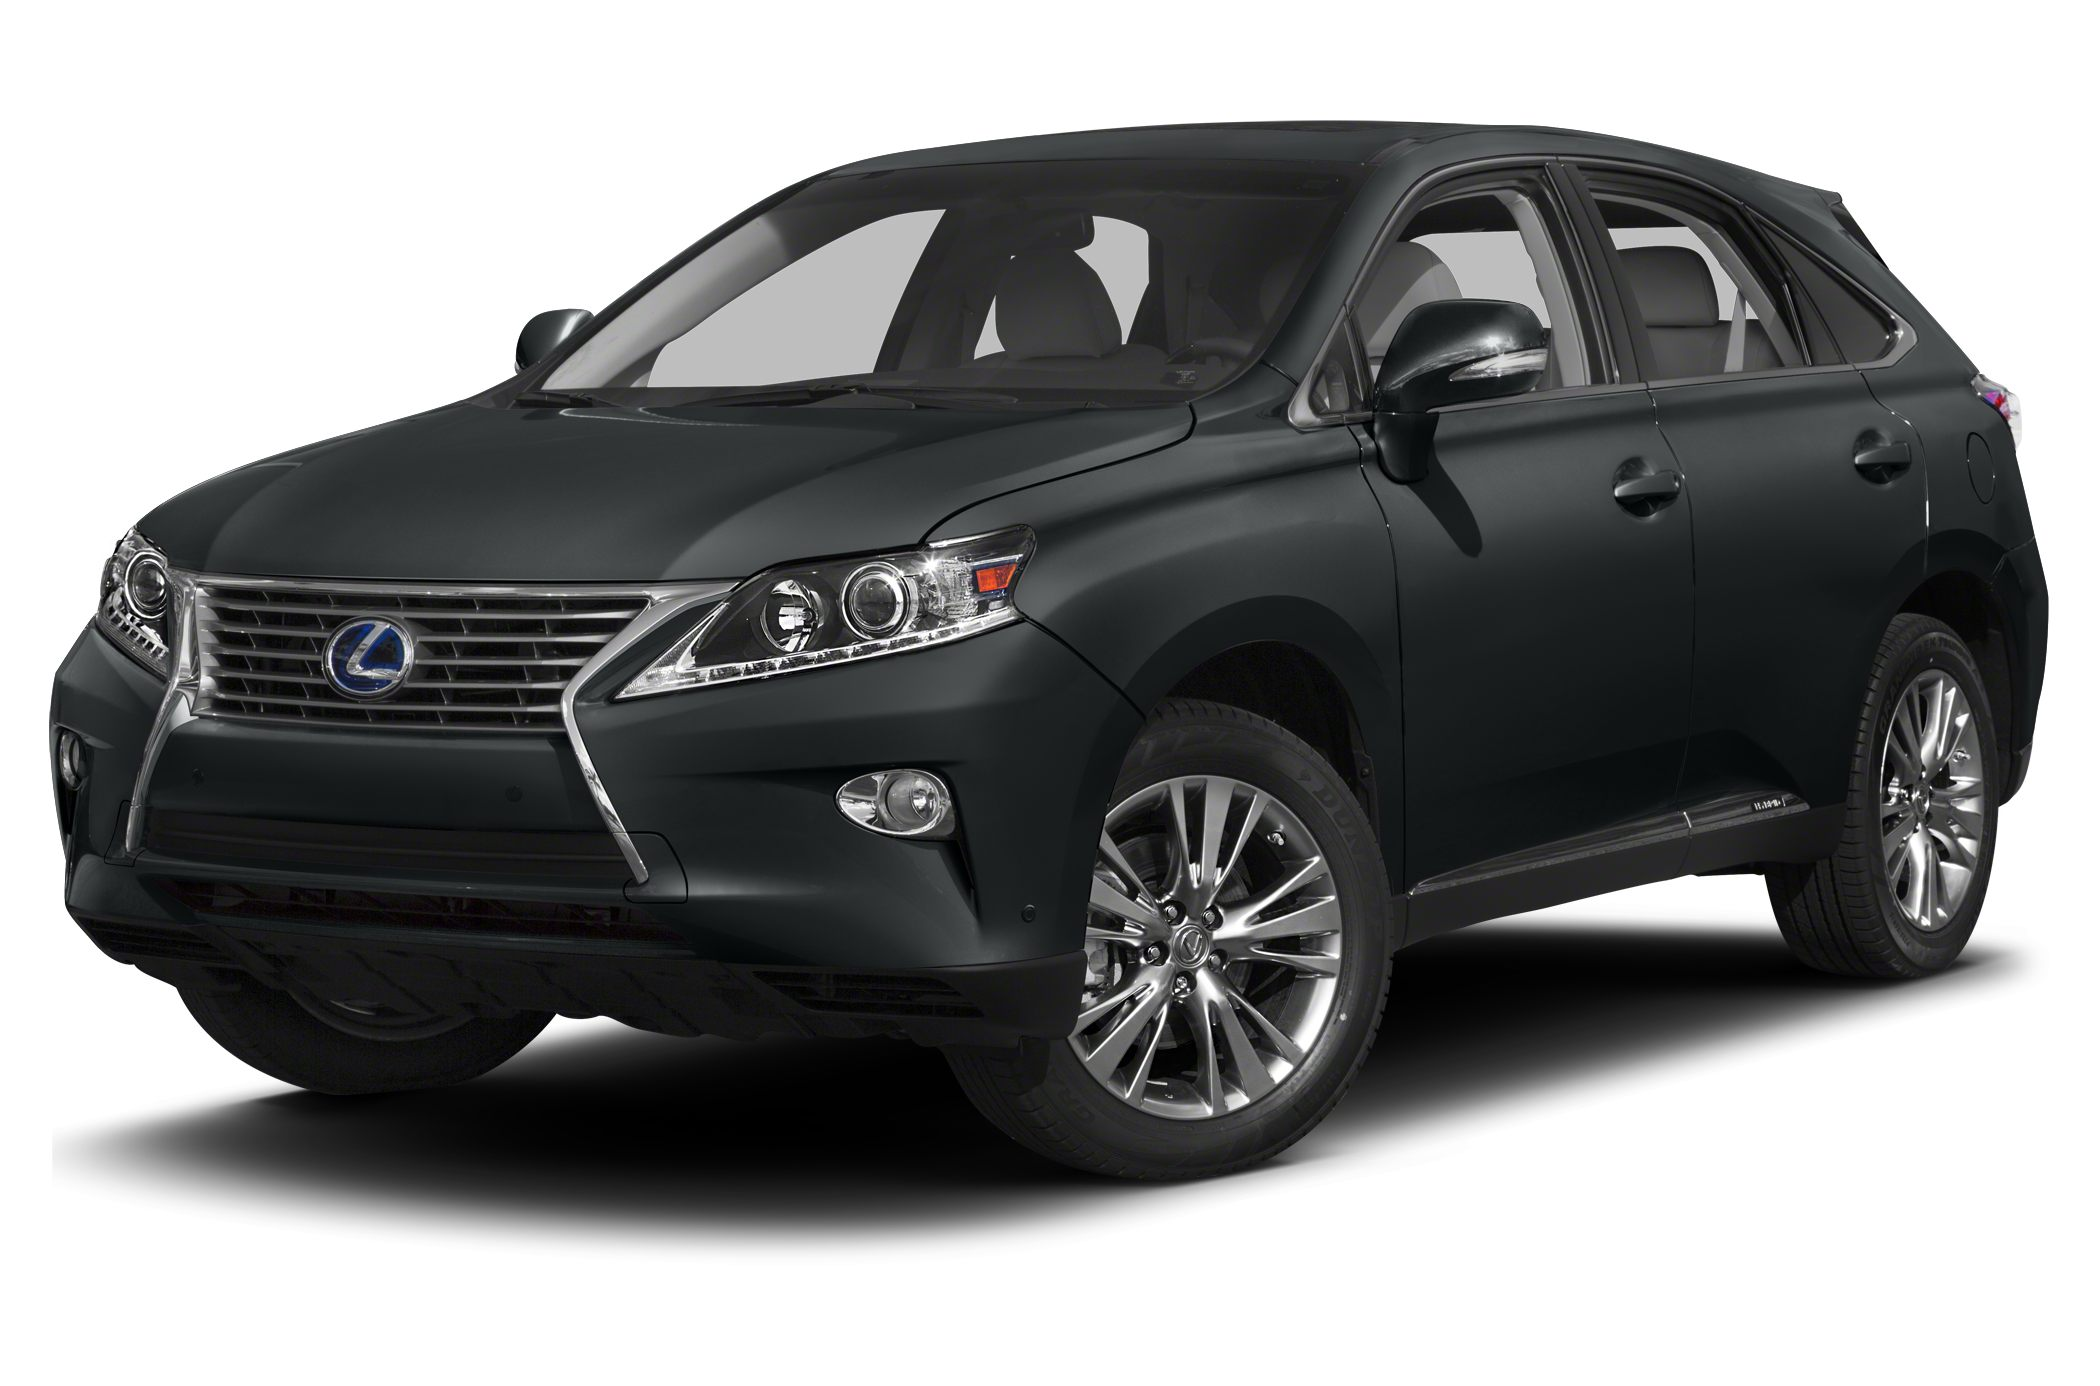 2013 Lexus RX 450h Base SUV for sale in Houston for $46,995 with 9,000 miles